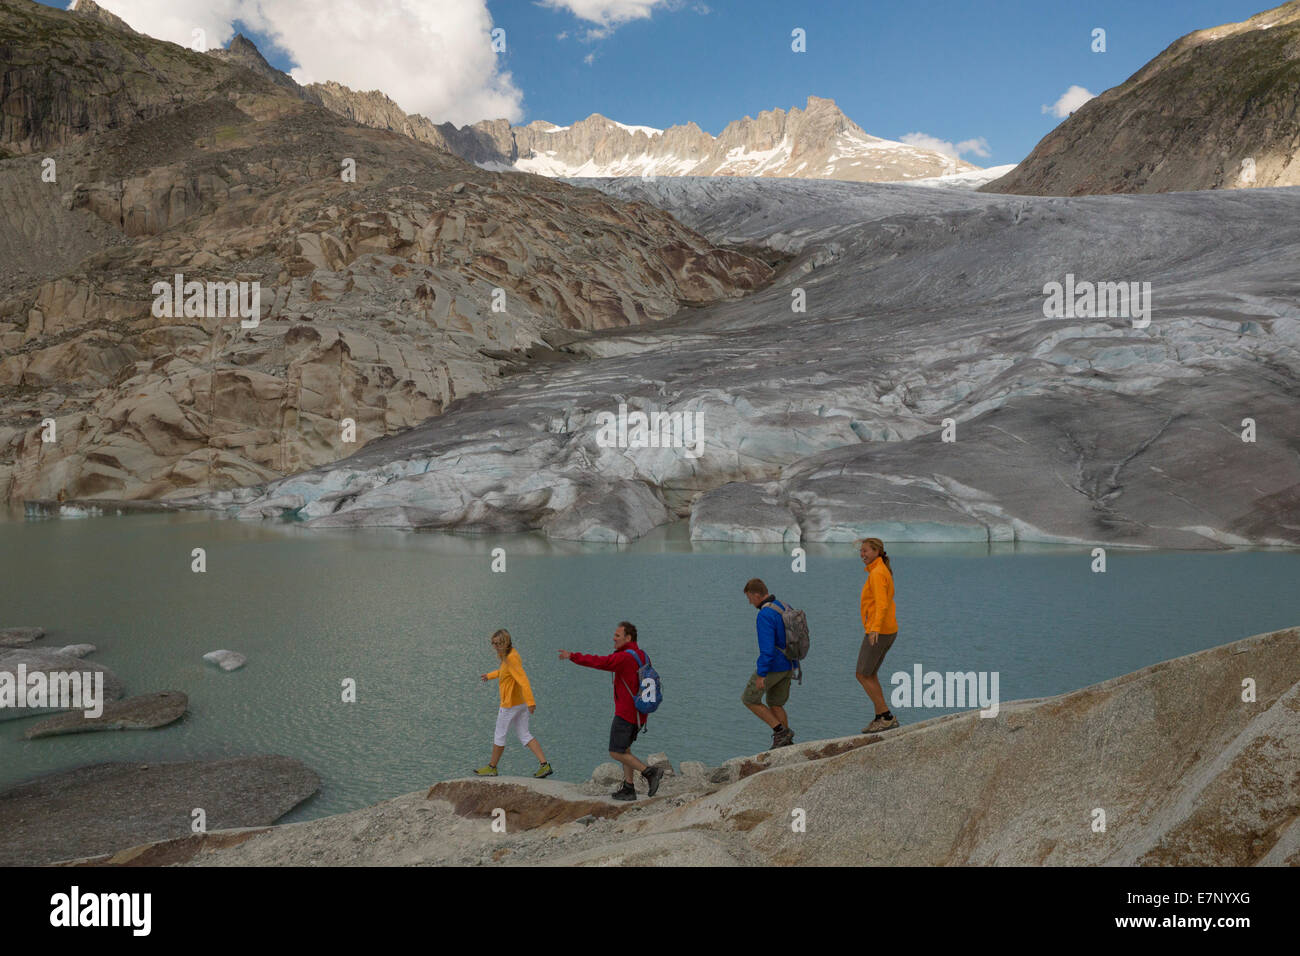 Gletsch VS, walking, hiking, Rhone glacier, Furka Pass, canton, VS, Valais, footpath, walking, hiking, glacier, - Stock Image